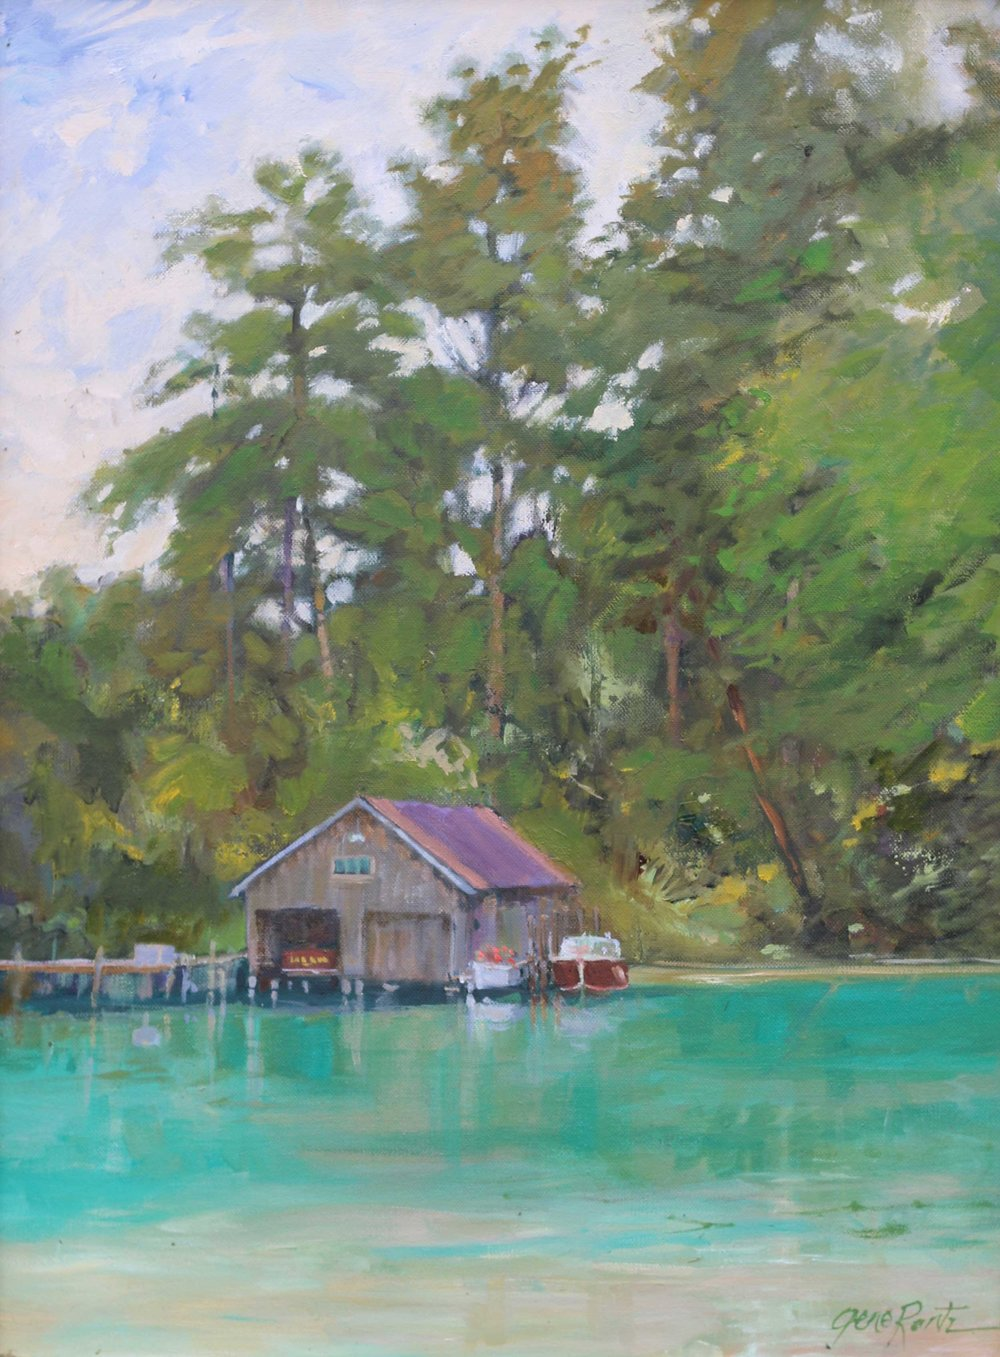 Boat House, Leland Michigan 24 x 18 Oil - Available at Trish's Dishes, Leland